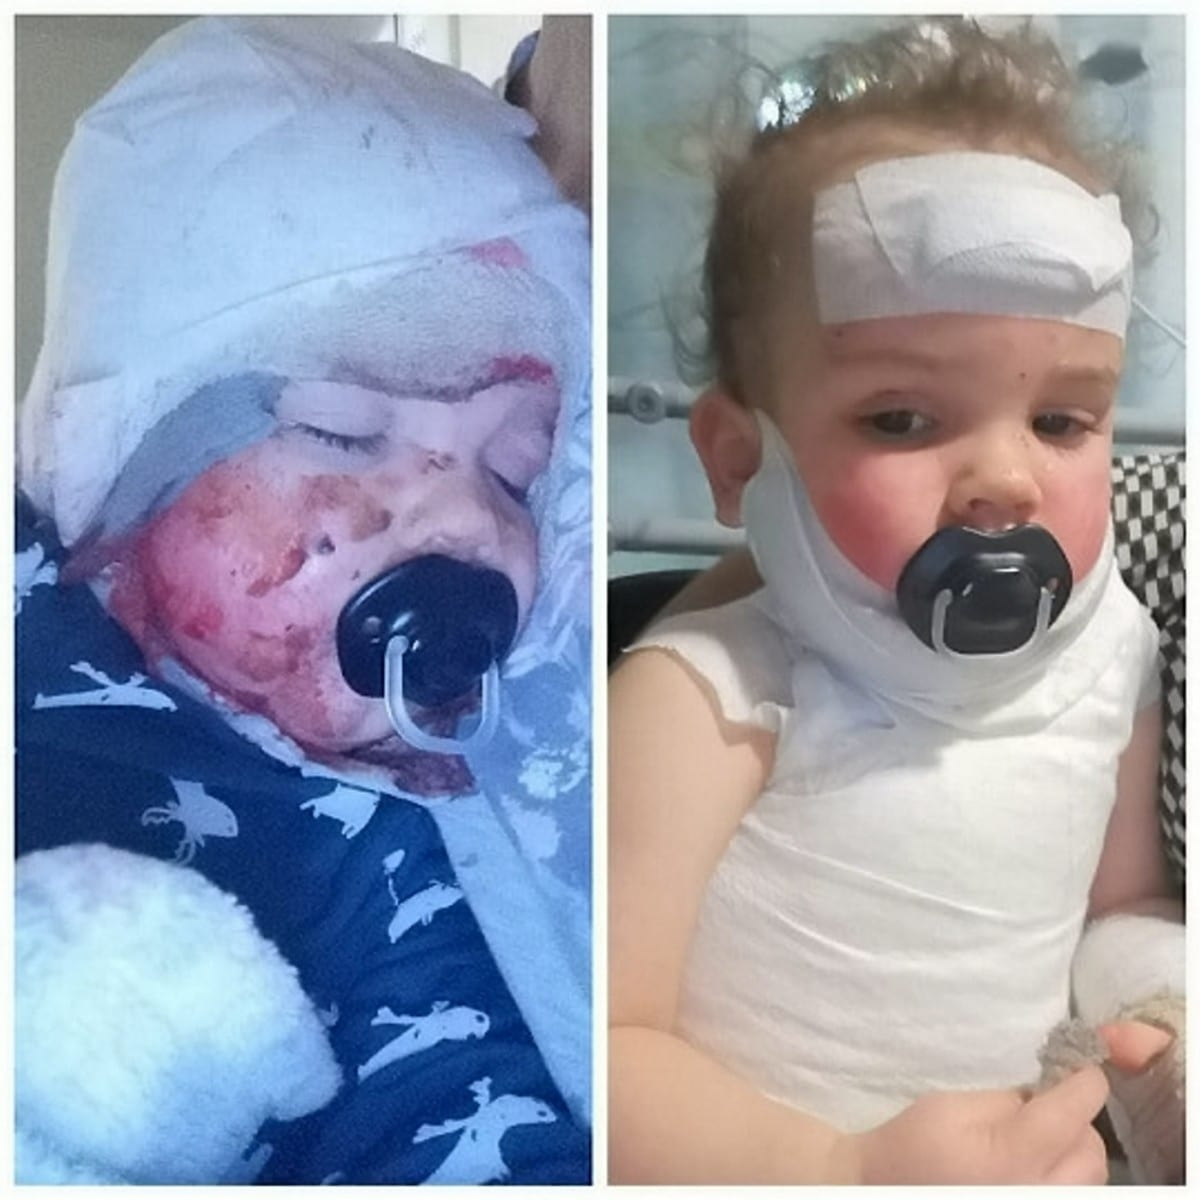 My Little Boy Almost Died And Was Left With Third Degree Burns All Over His Body After Pulling A Vegetable Steamer Over His Head